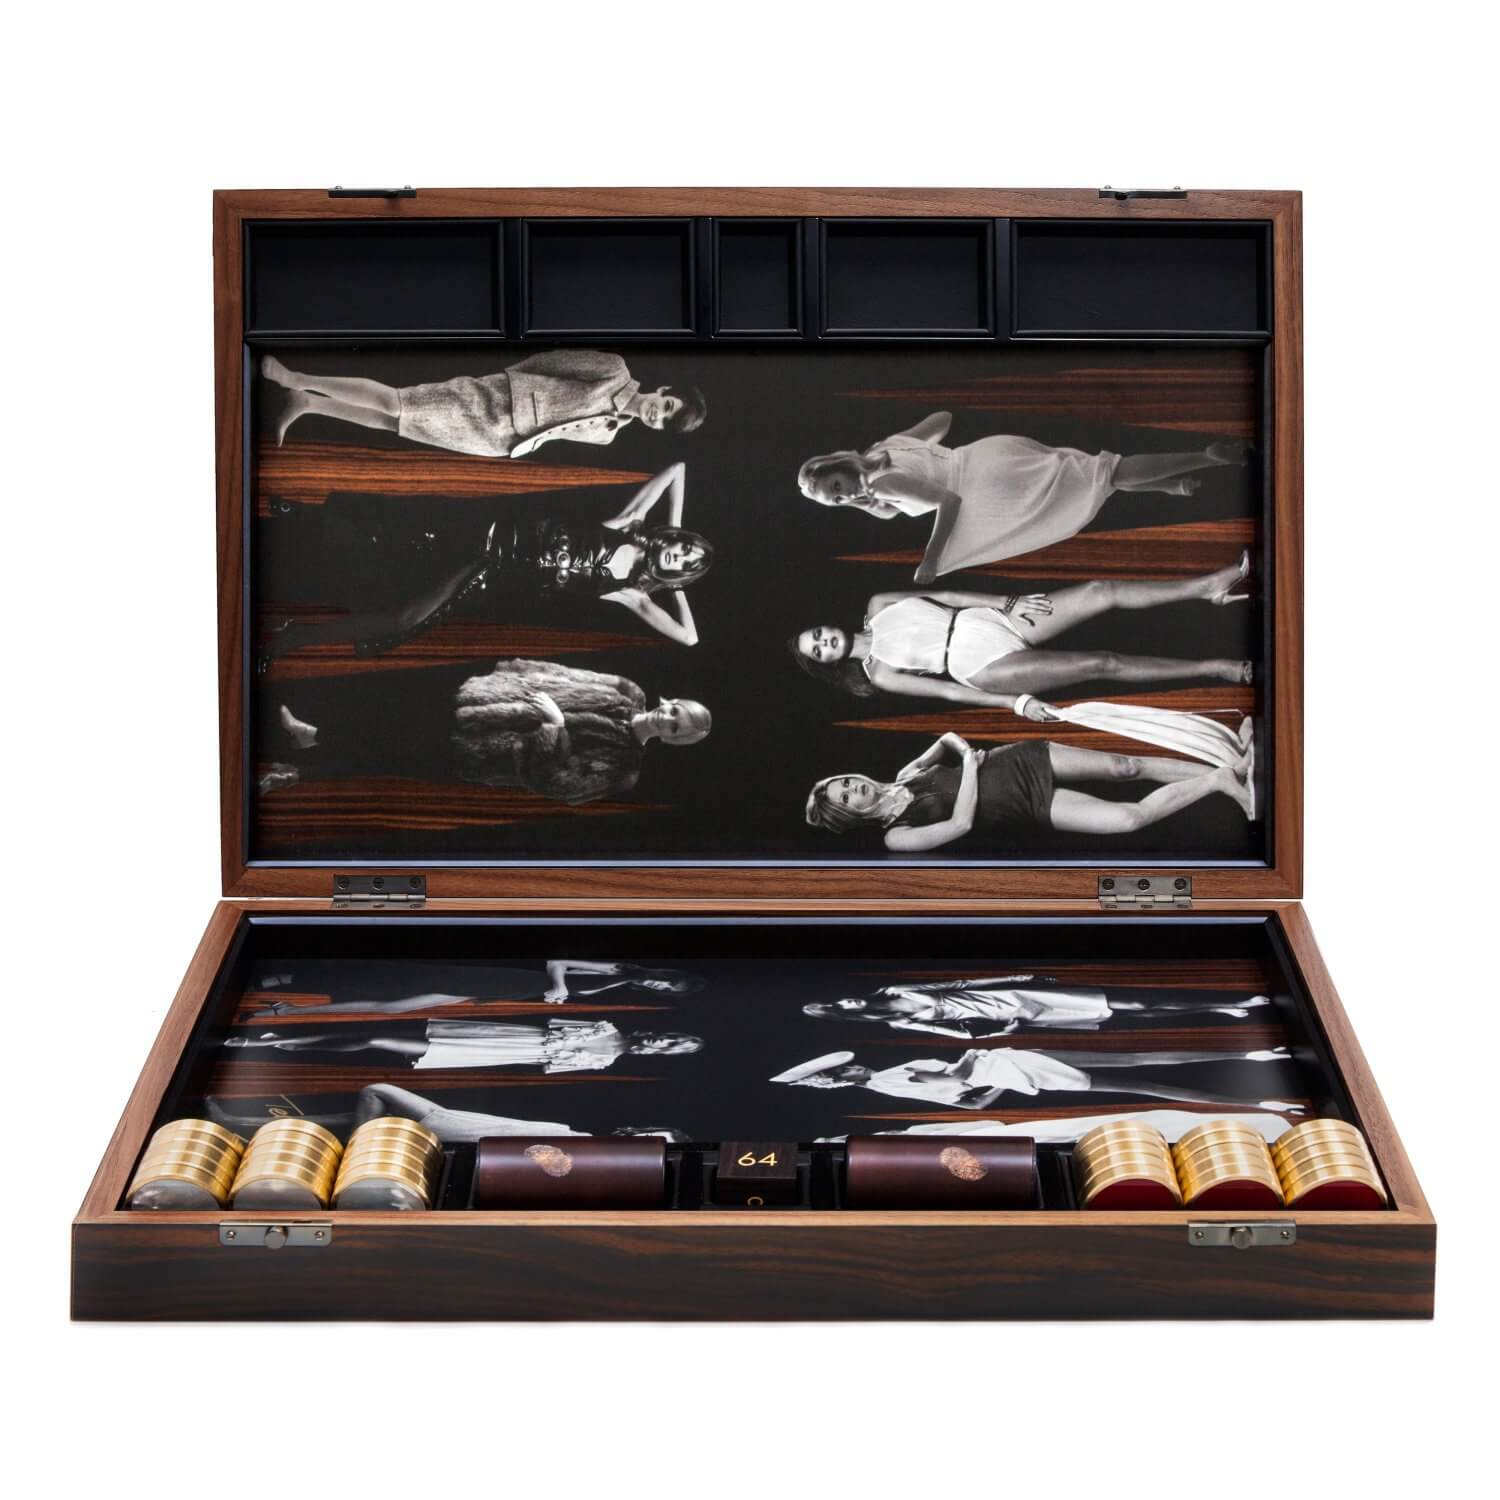 Goddesses backgammon board in an Ebony box with Red Jasper and Mother of Pearl playing pieces